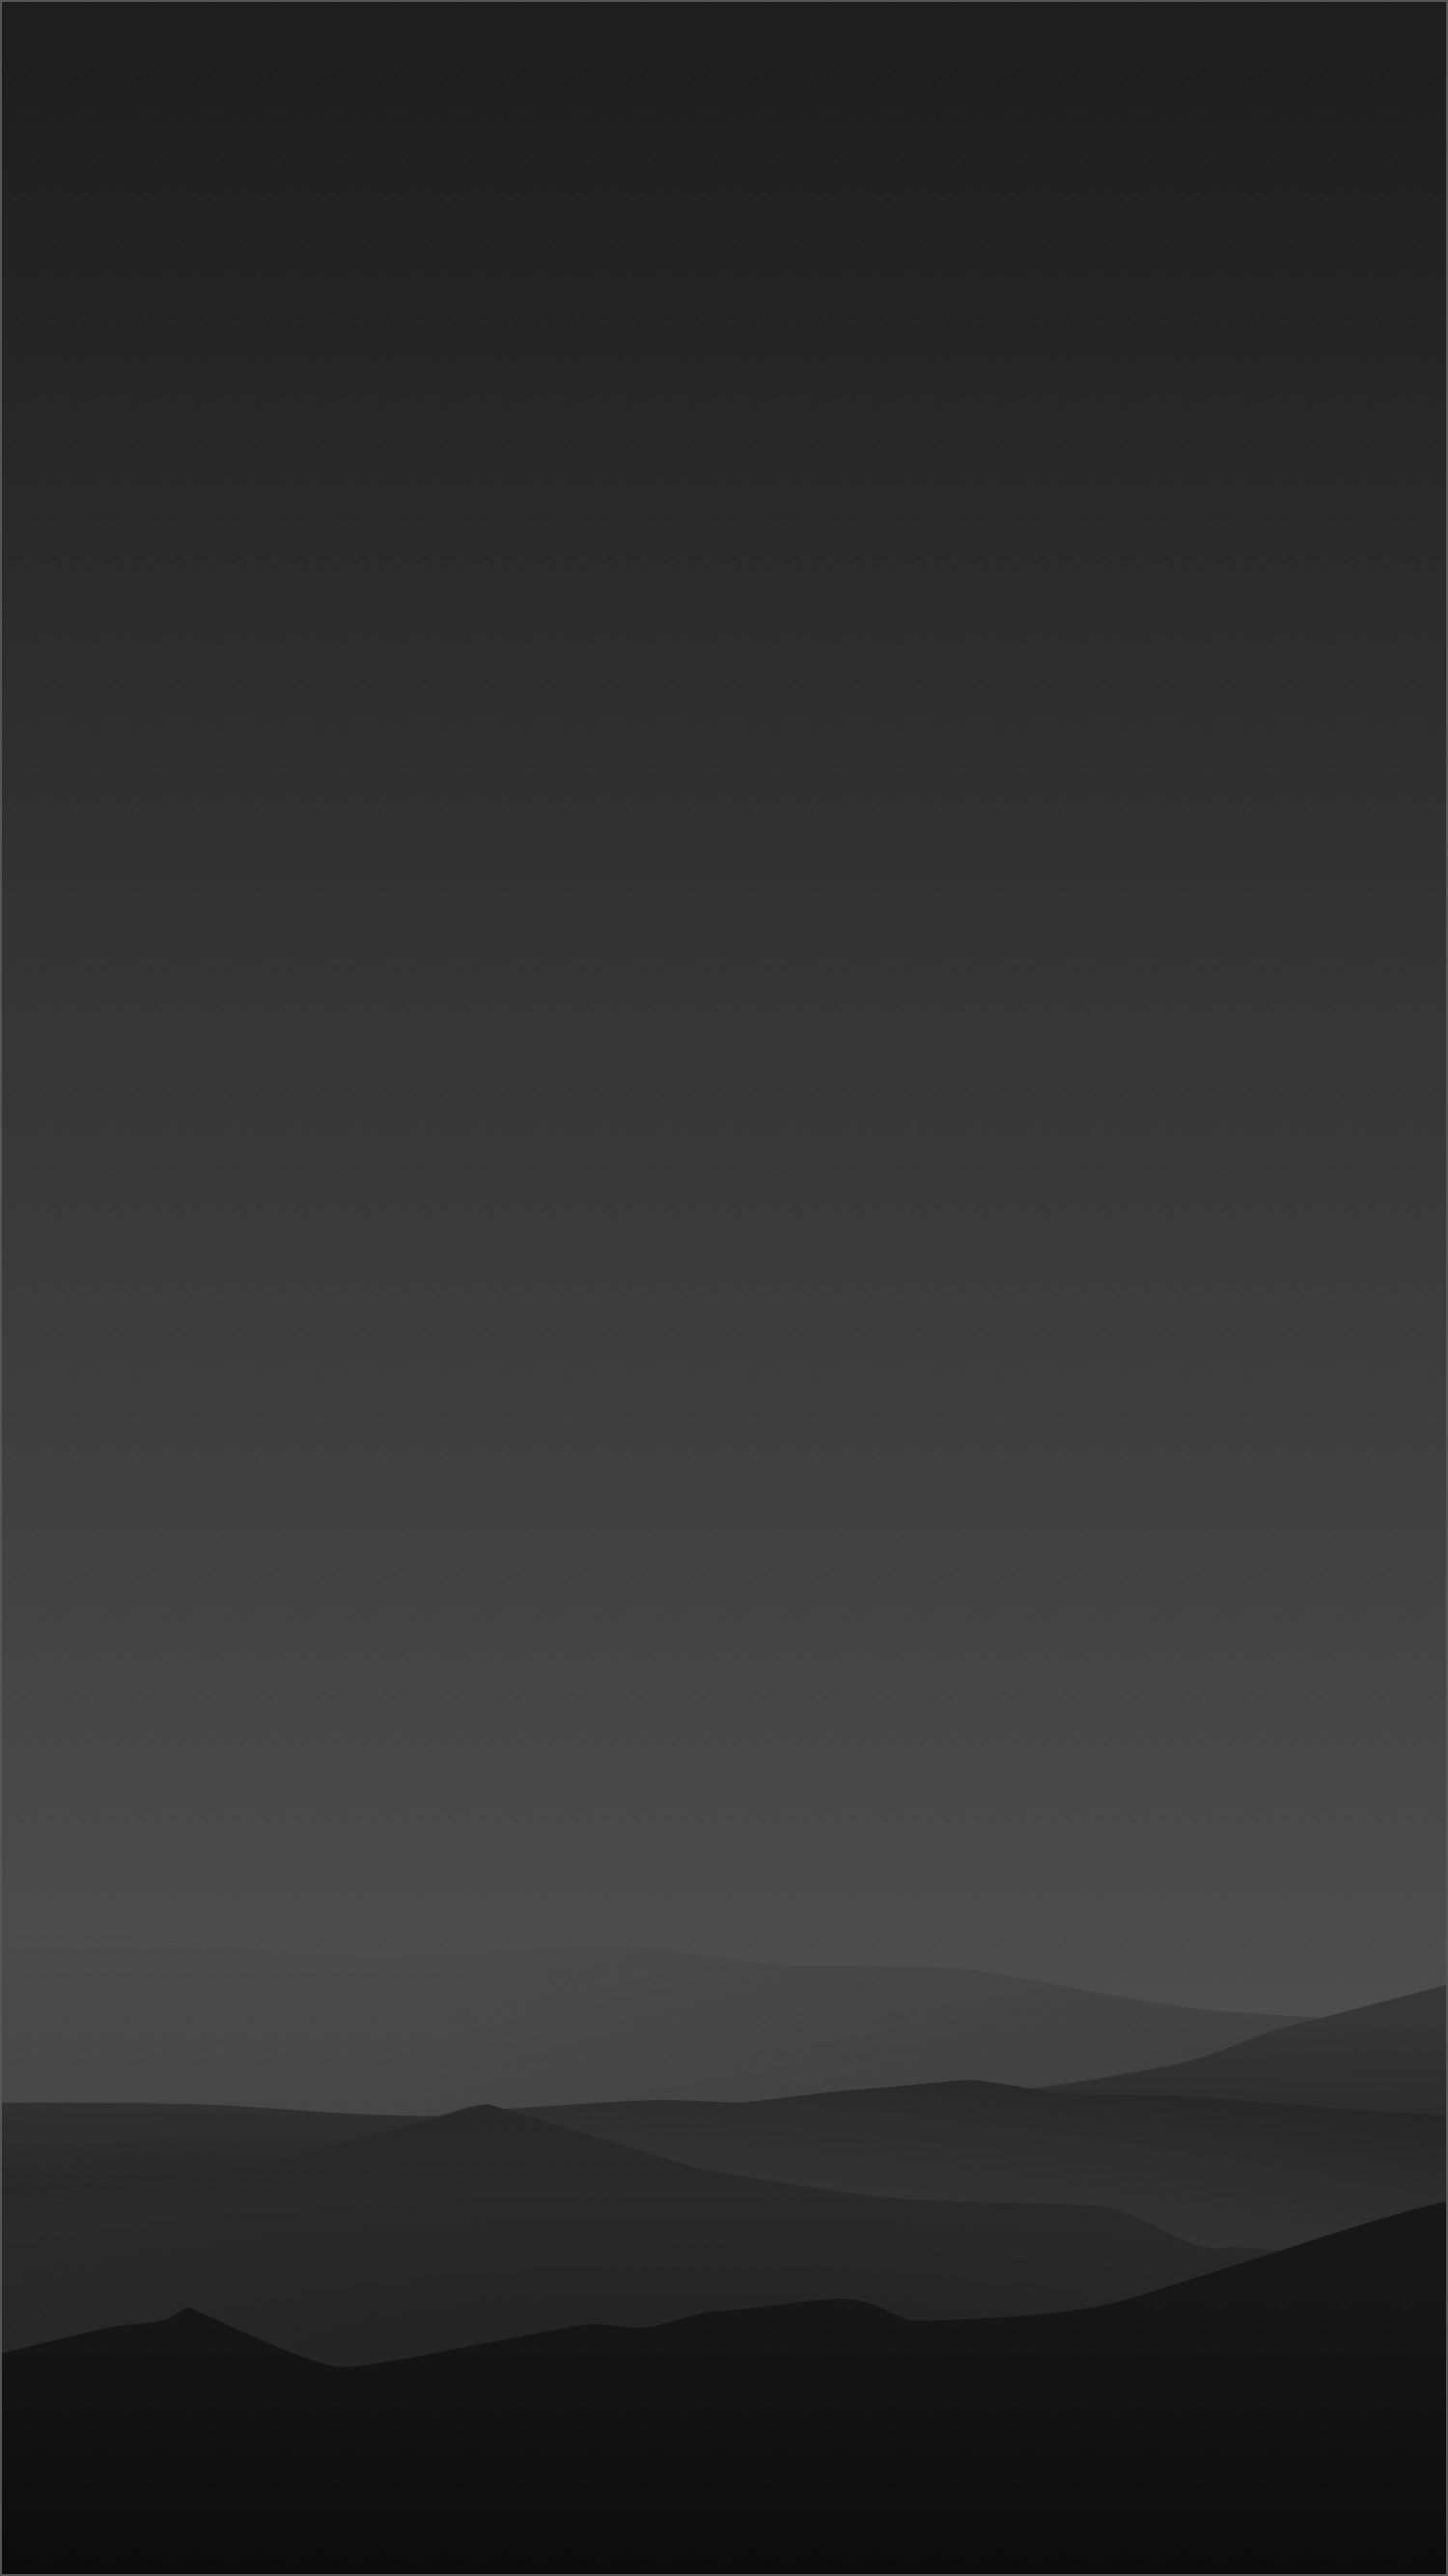 Fall Wallpaper Black And White Mywallpapers Site Minimalist Iphone Iphone Minimalist Wallpaper Minimal Wallpaper